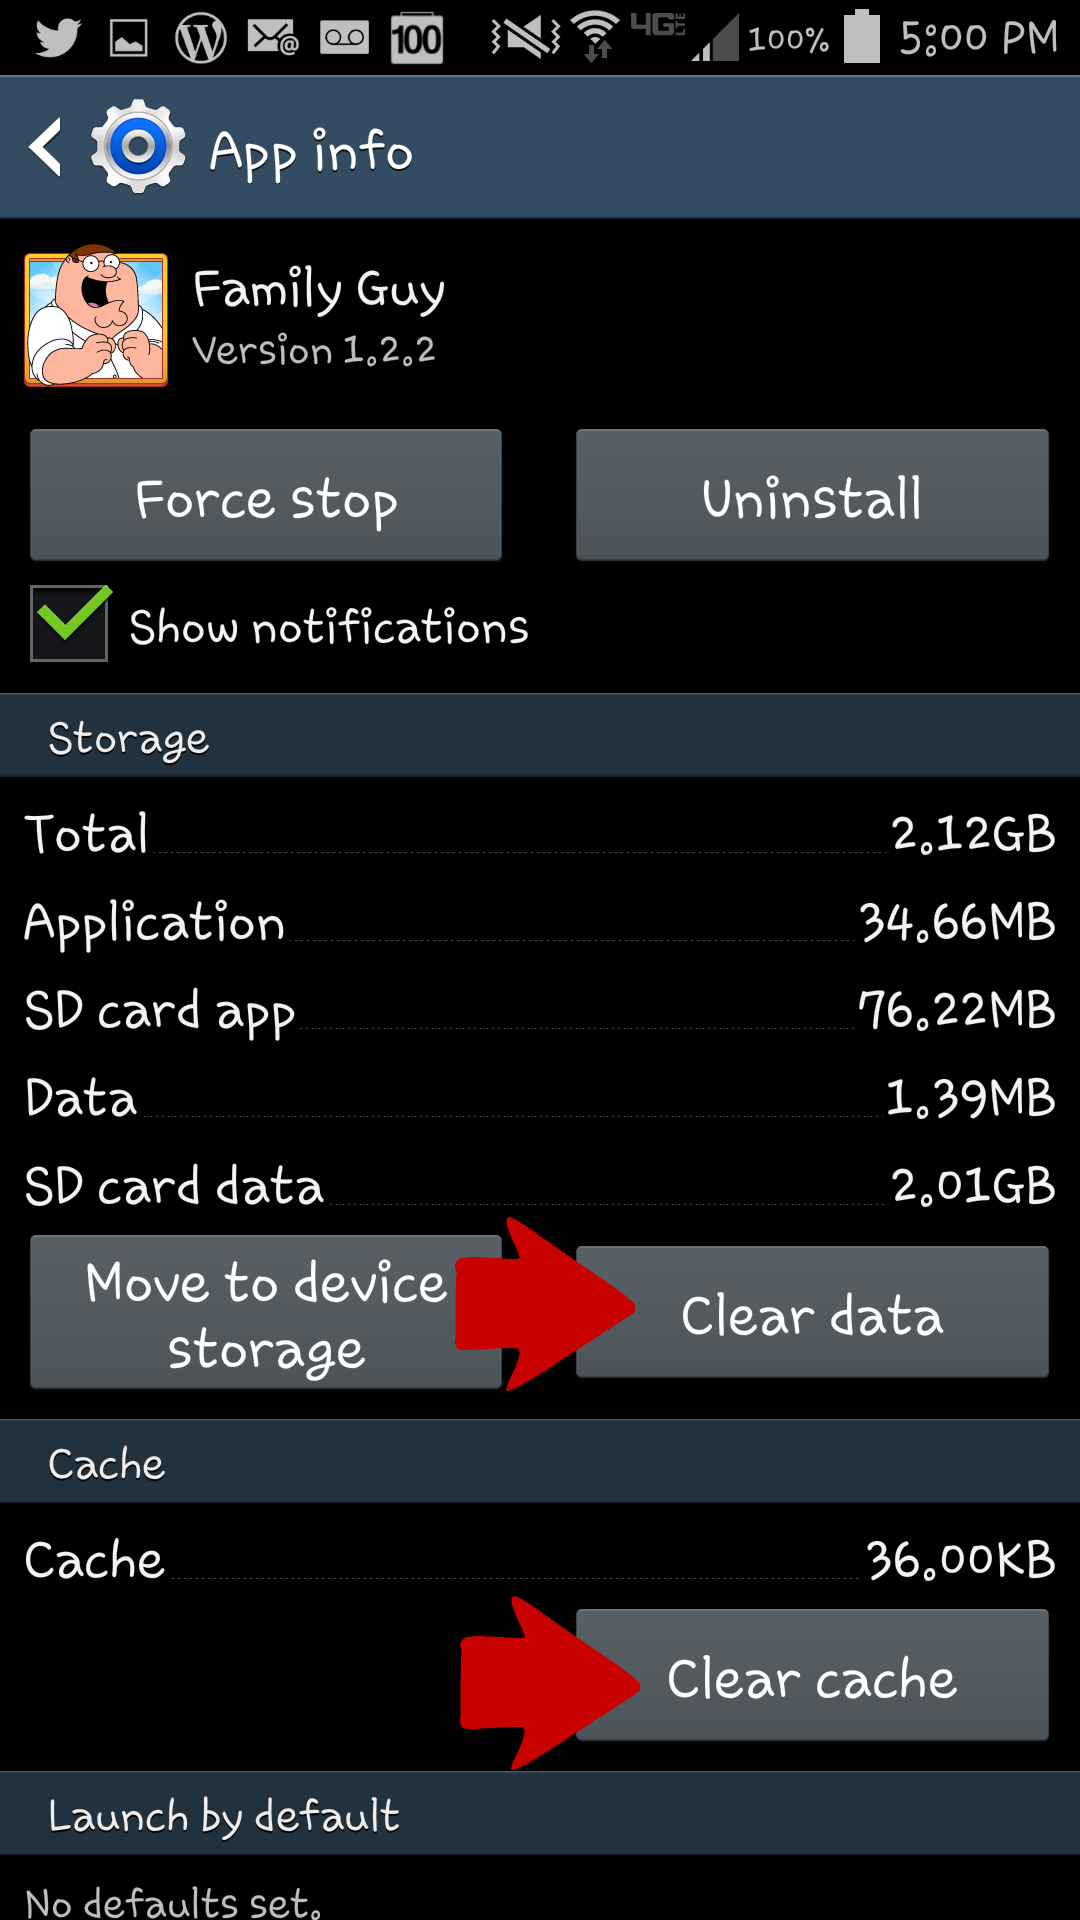 clear cache in applications manager